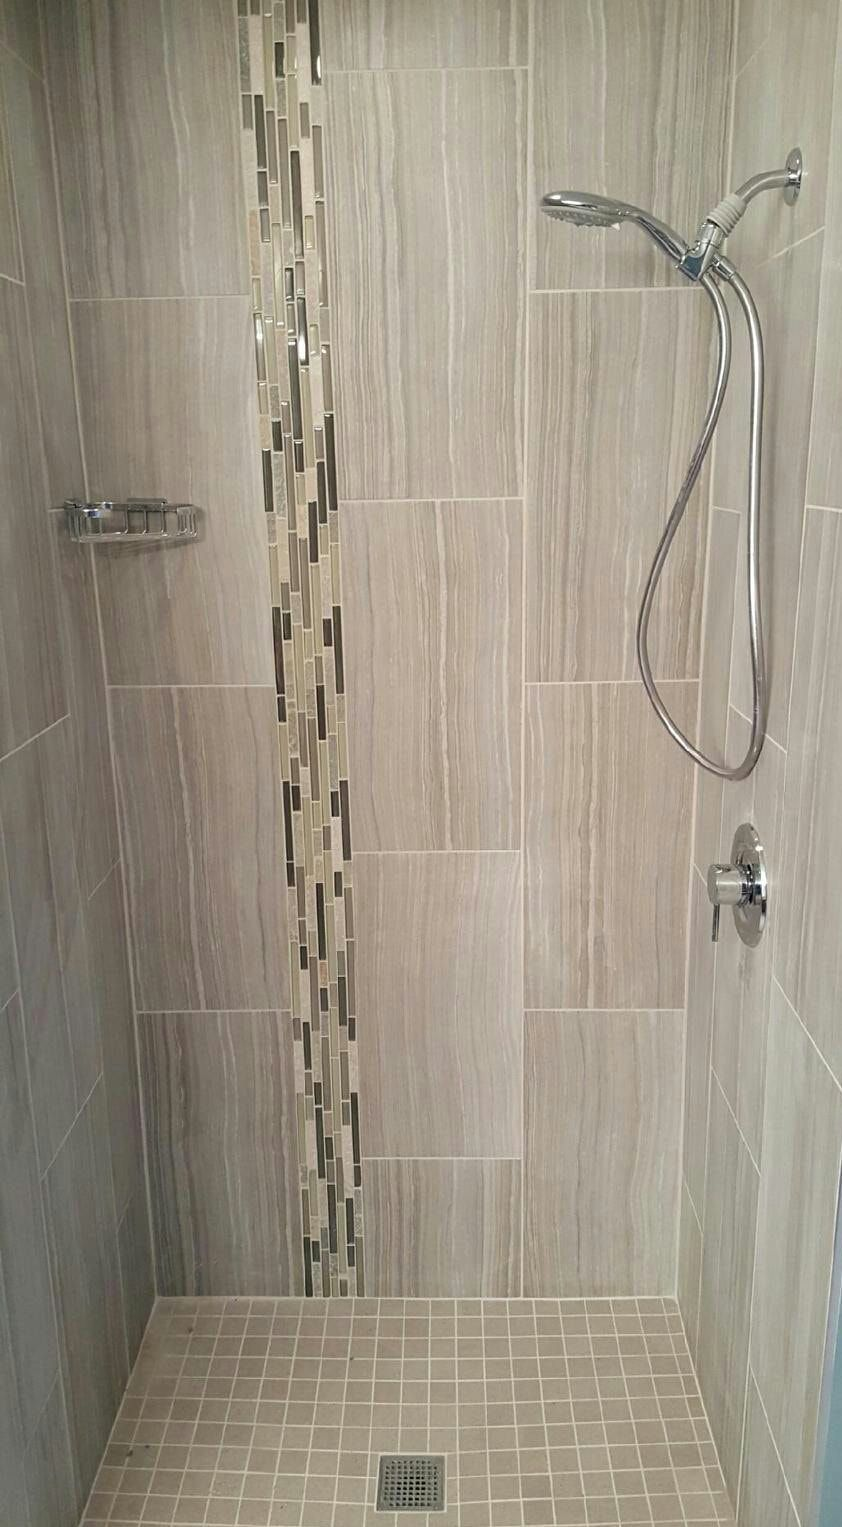 Vertical Accent Strip In The Shower Shower Remodel Shower Remodel Diy Small Shower Remodel